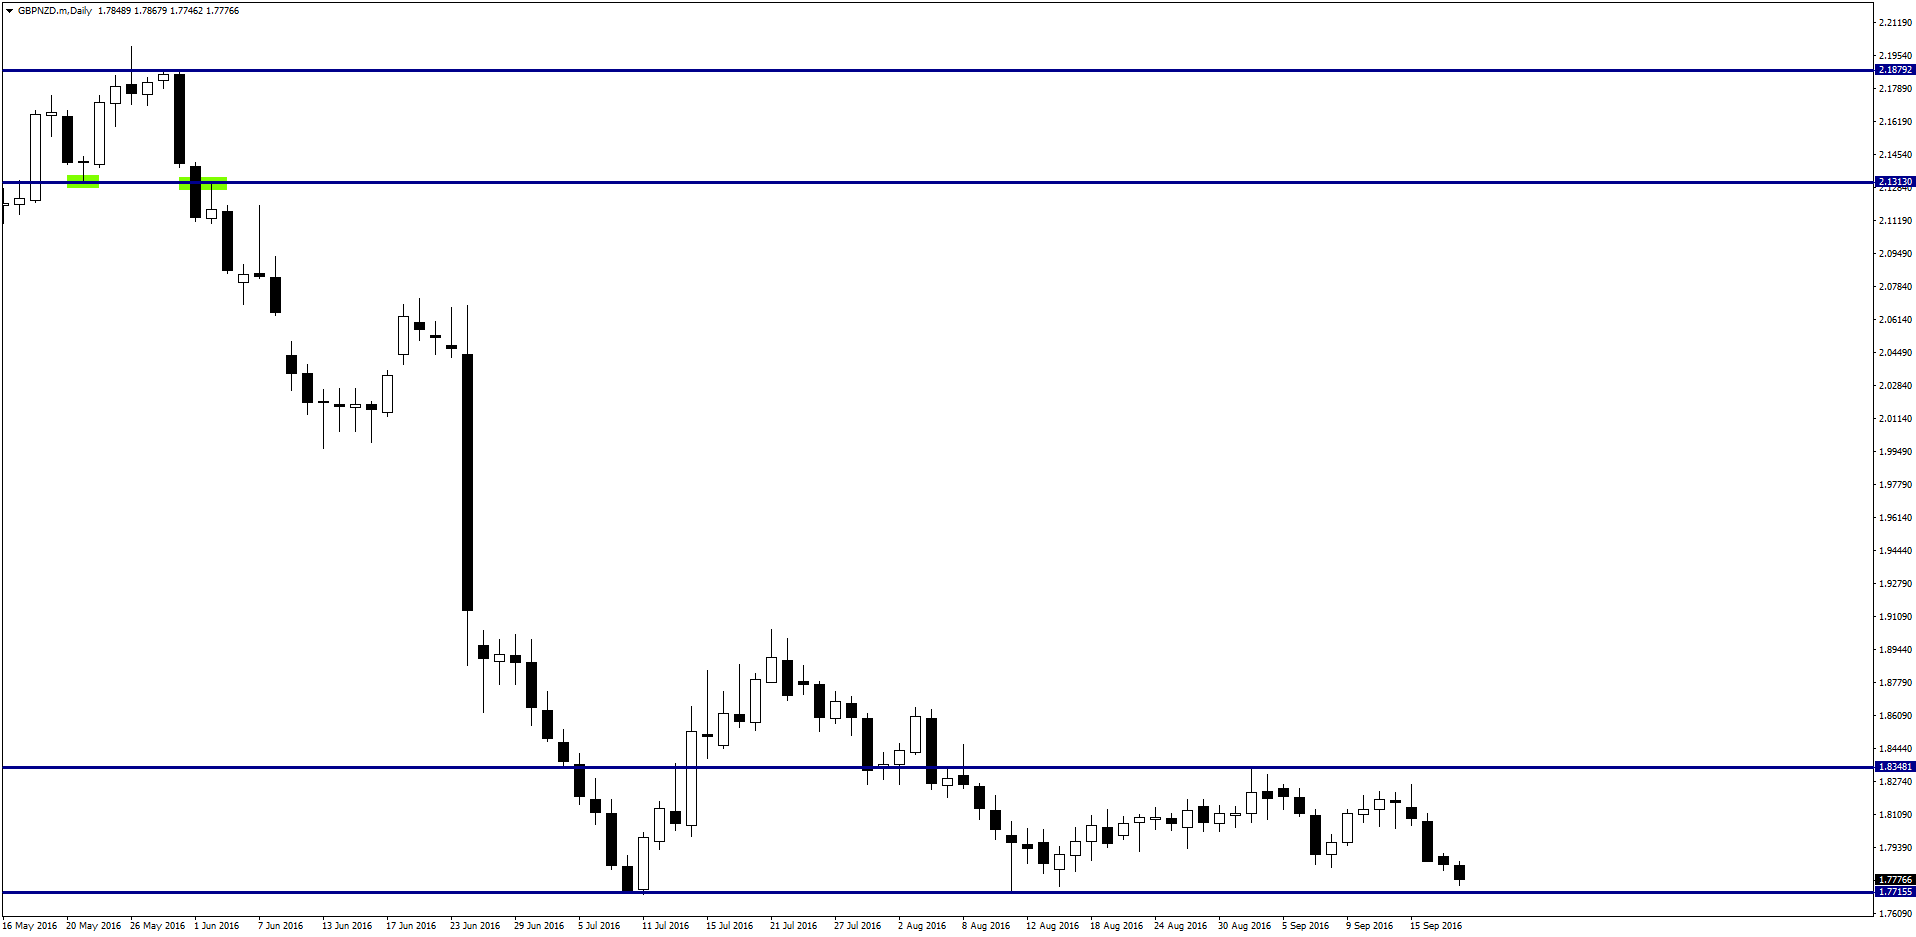 gbpnzd-mdaily-9-20-2016